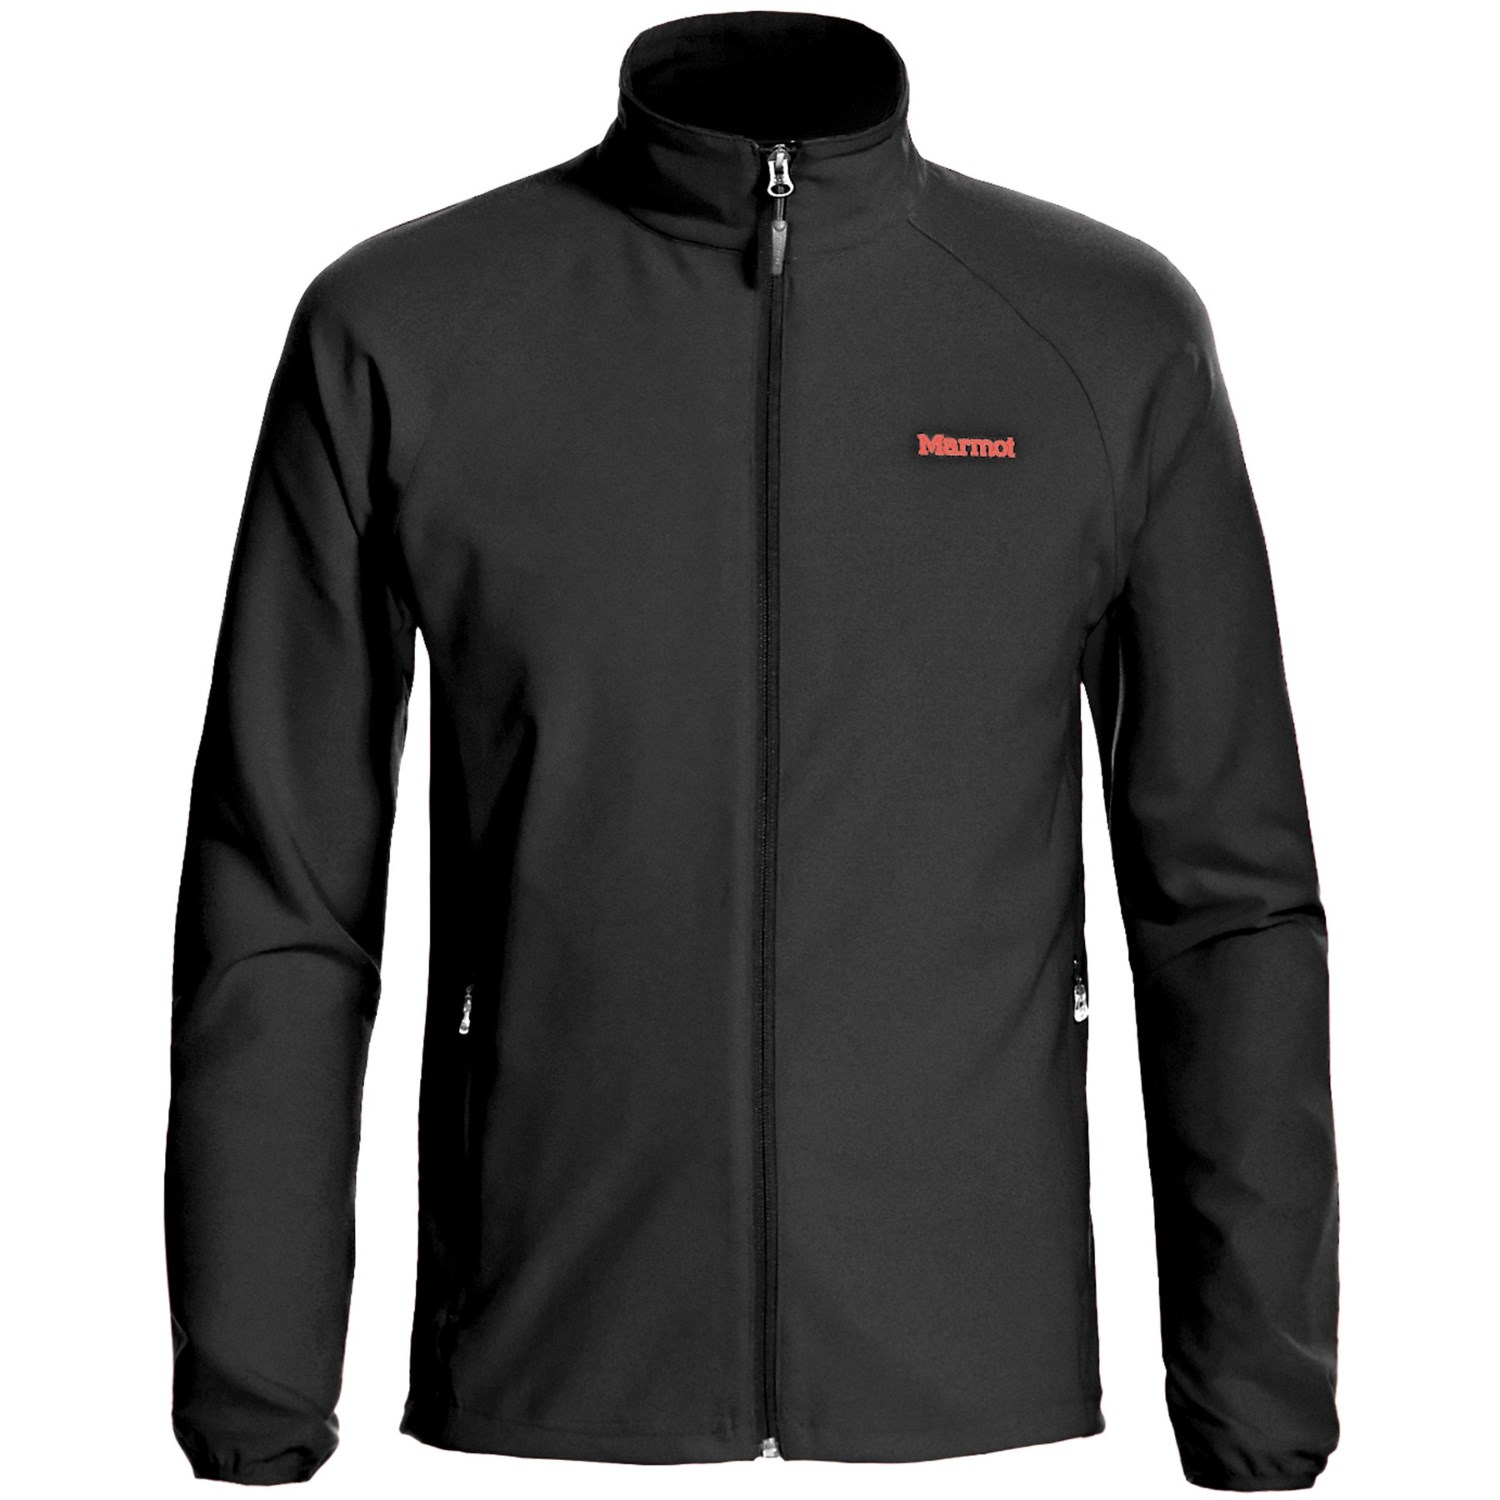 marmot aber jacket soft shell for men. Black Bedroom Furniture Sets. Home Design Ideas